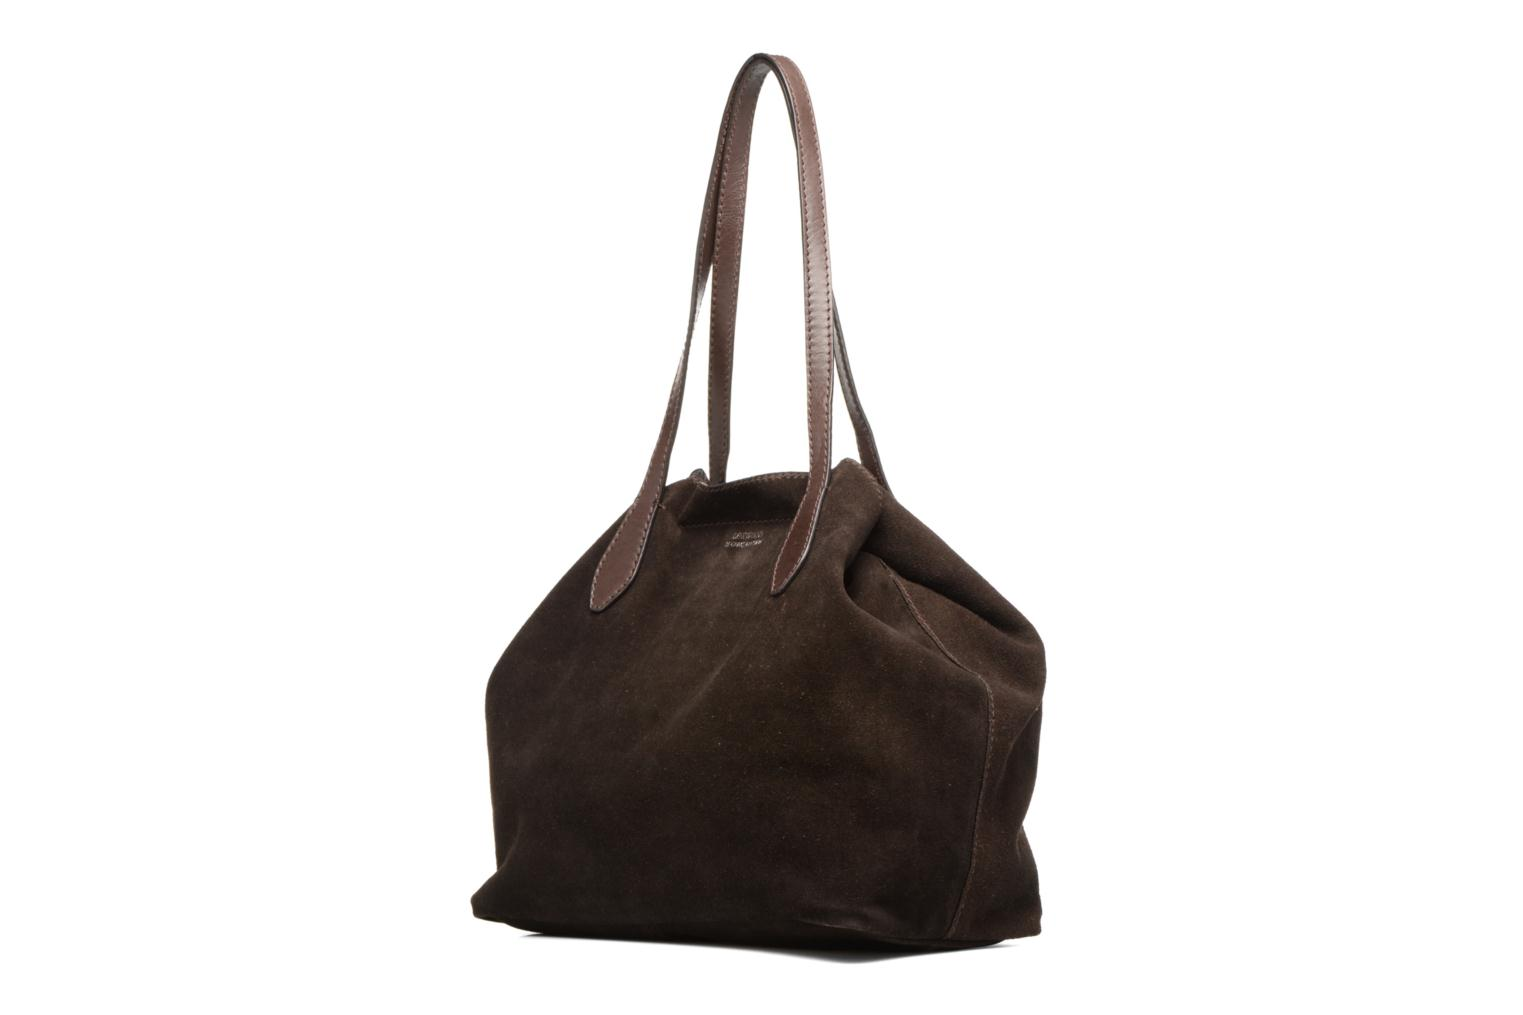 Handtassen Loxwood Sac Shopper Bruin model